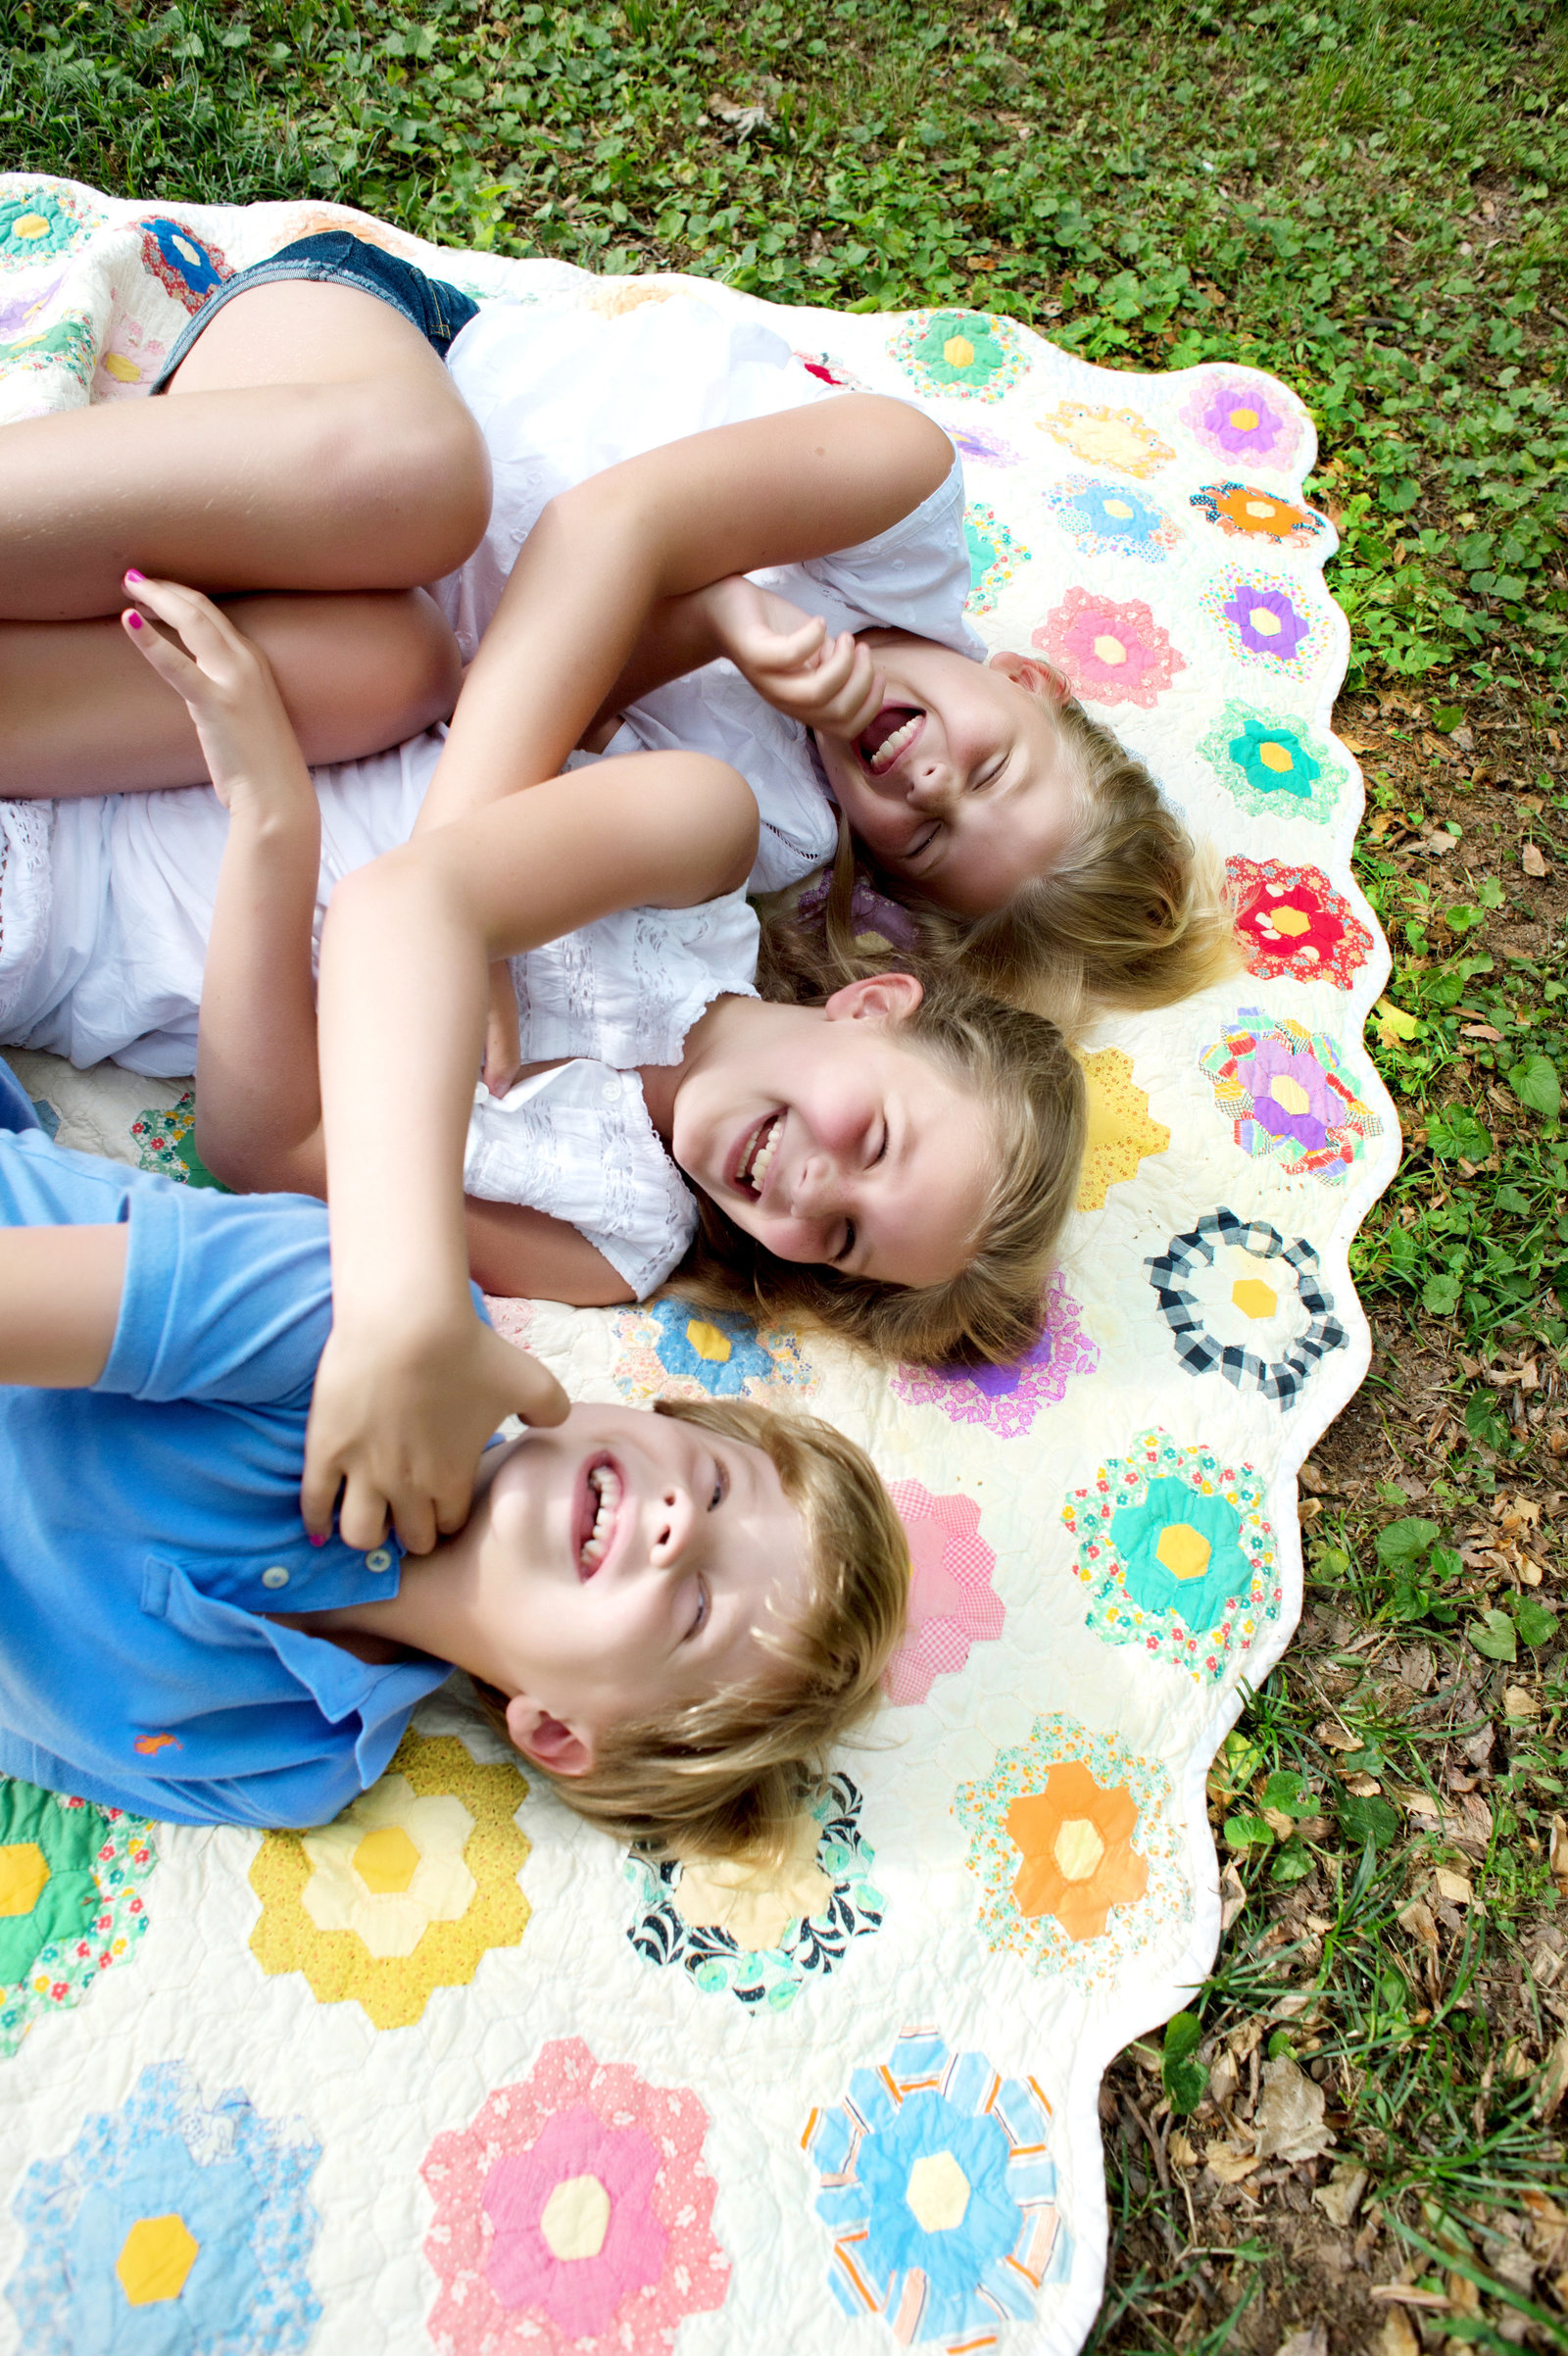 siblings laugh as tickle each other as they lay in the grass on a colorful quilt